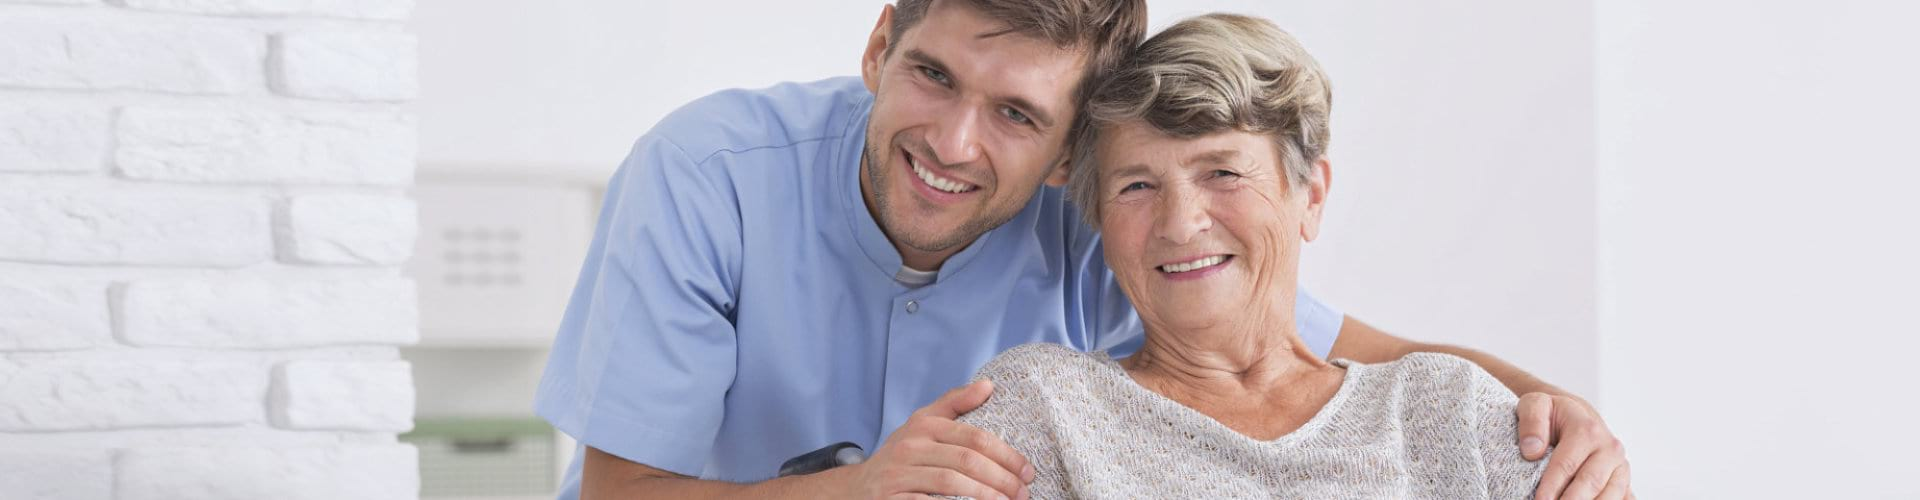 male caregiver with senior woman smiling